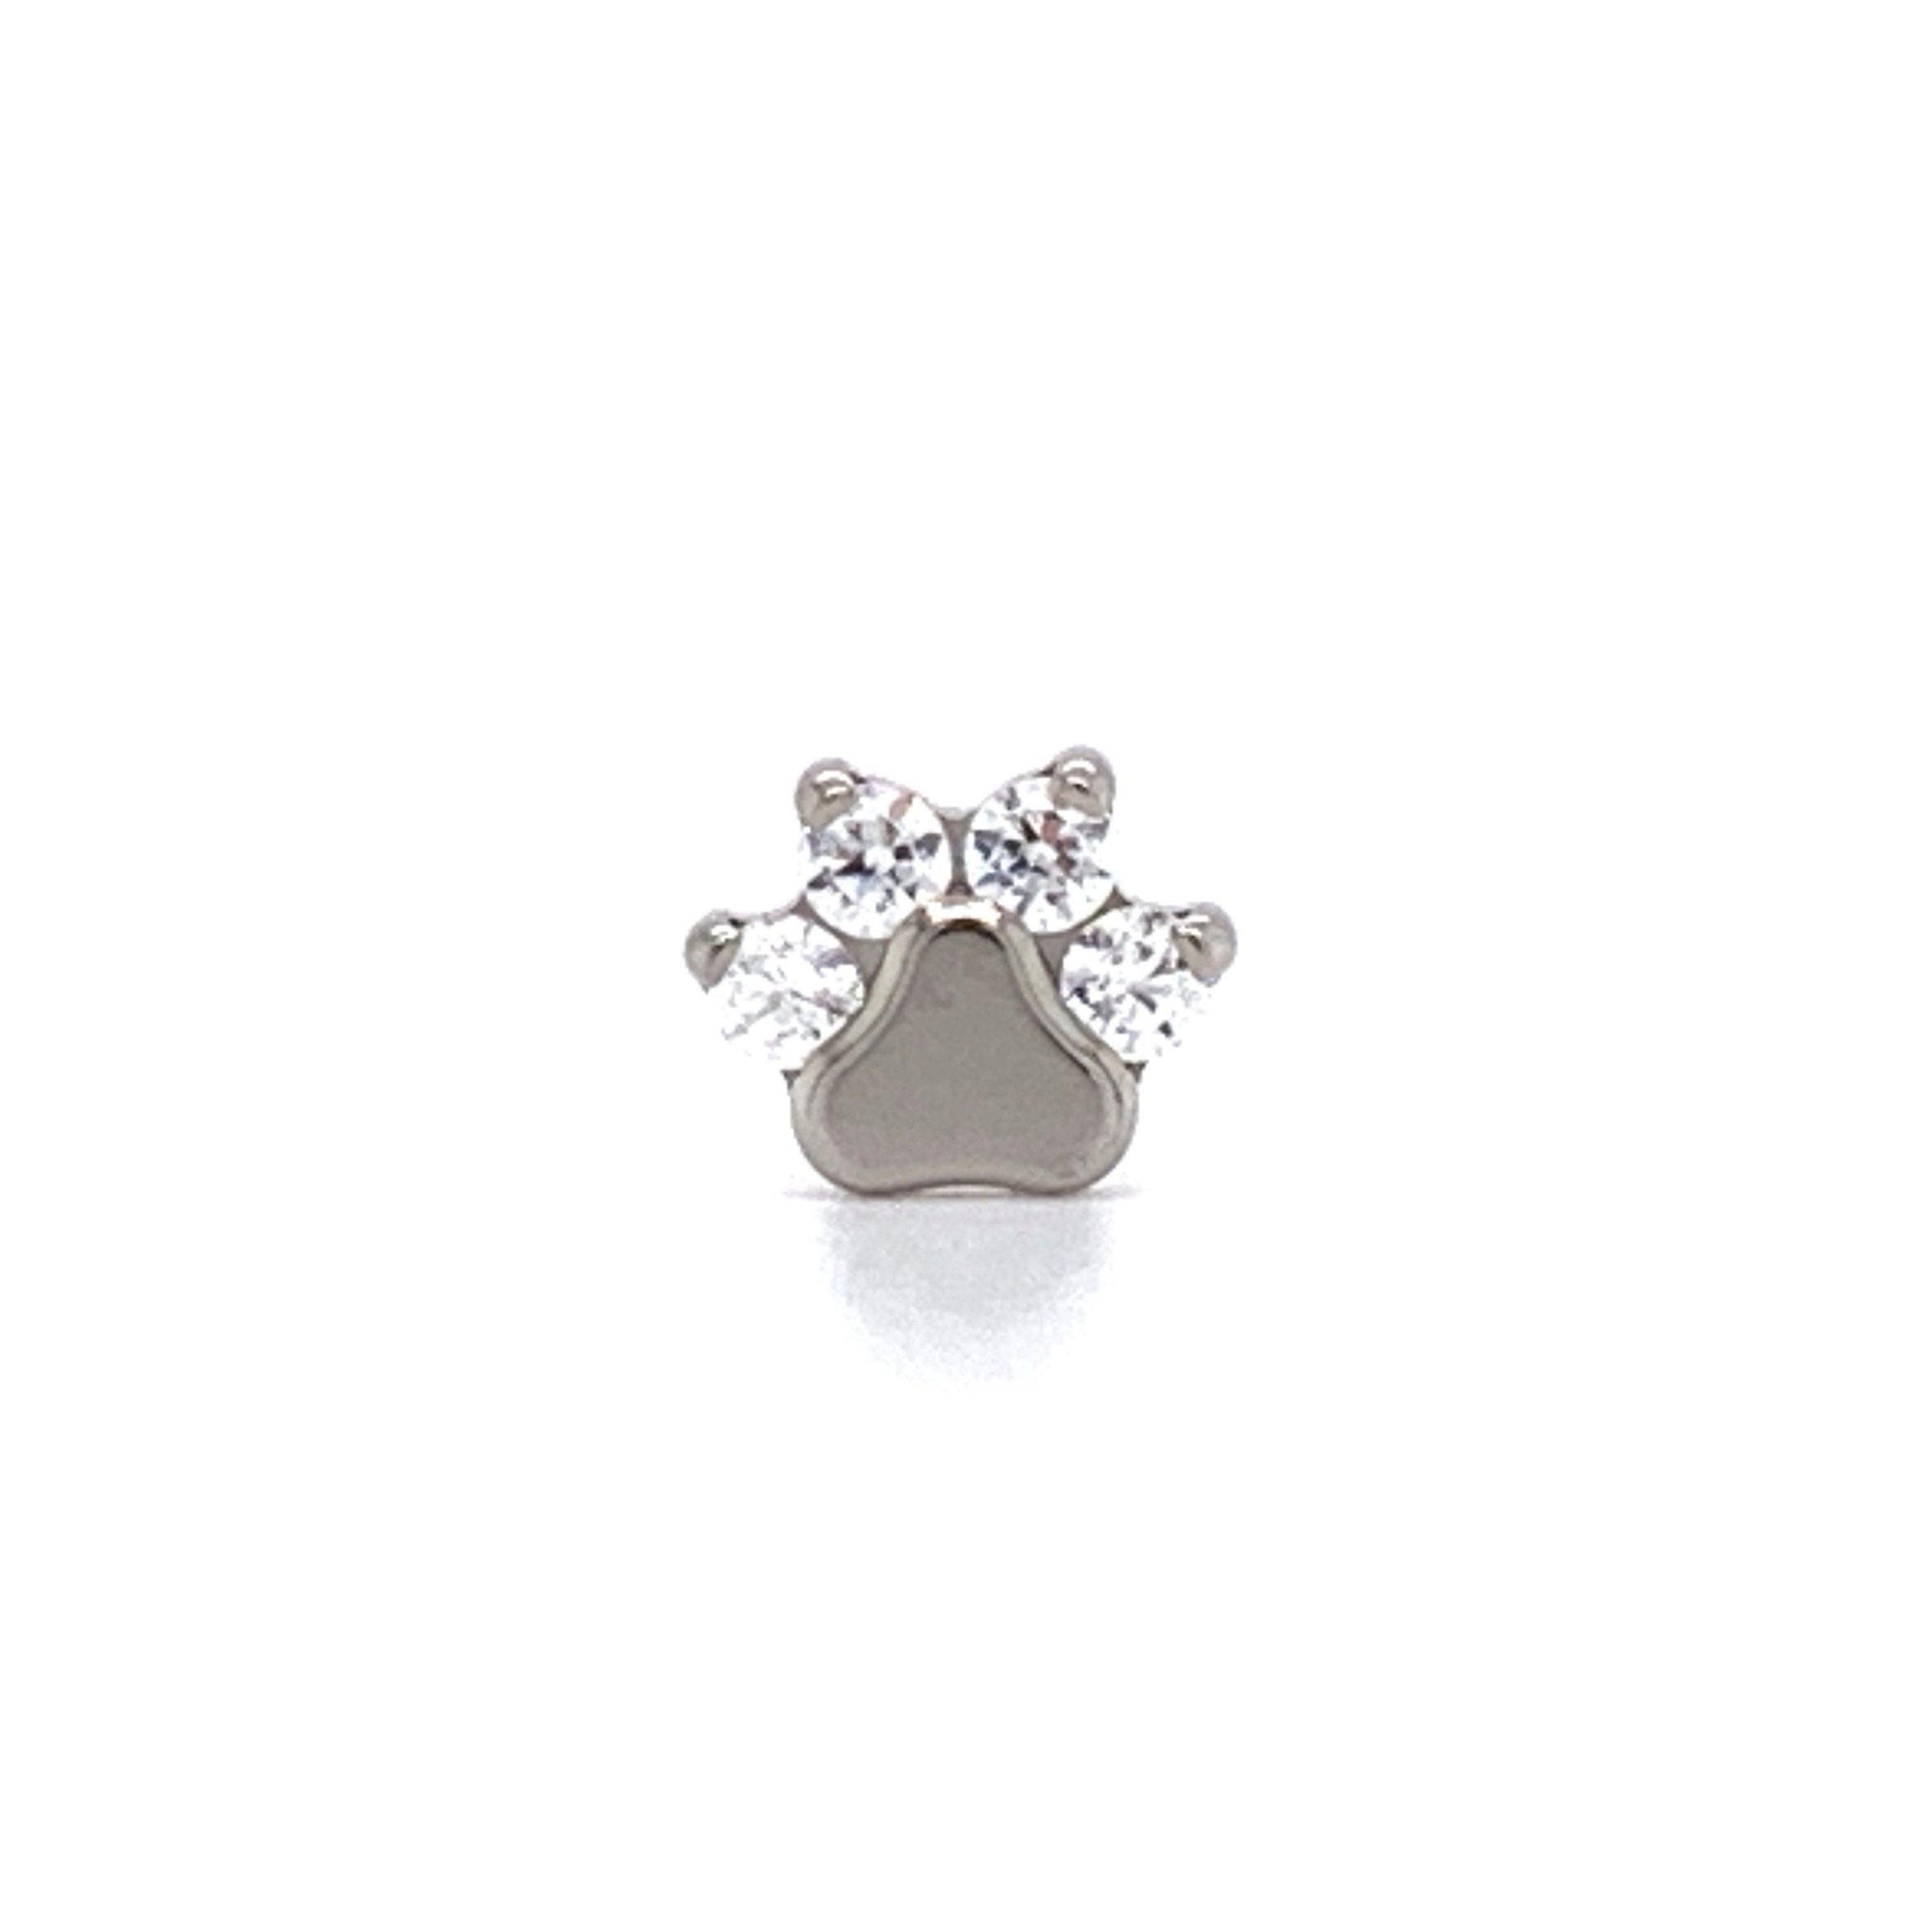 Industrial Strength Odyssey Faceted White CZ Gem Paw Print End